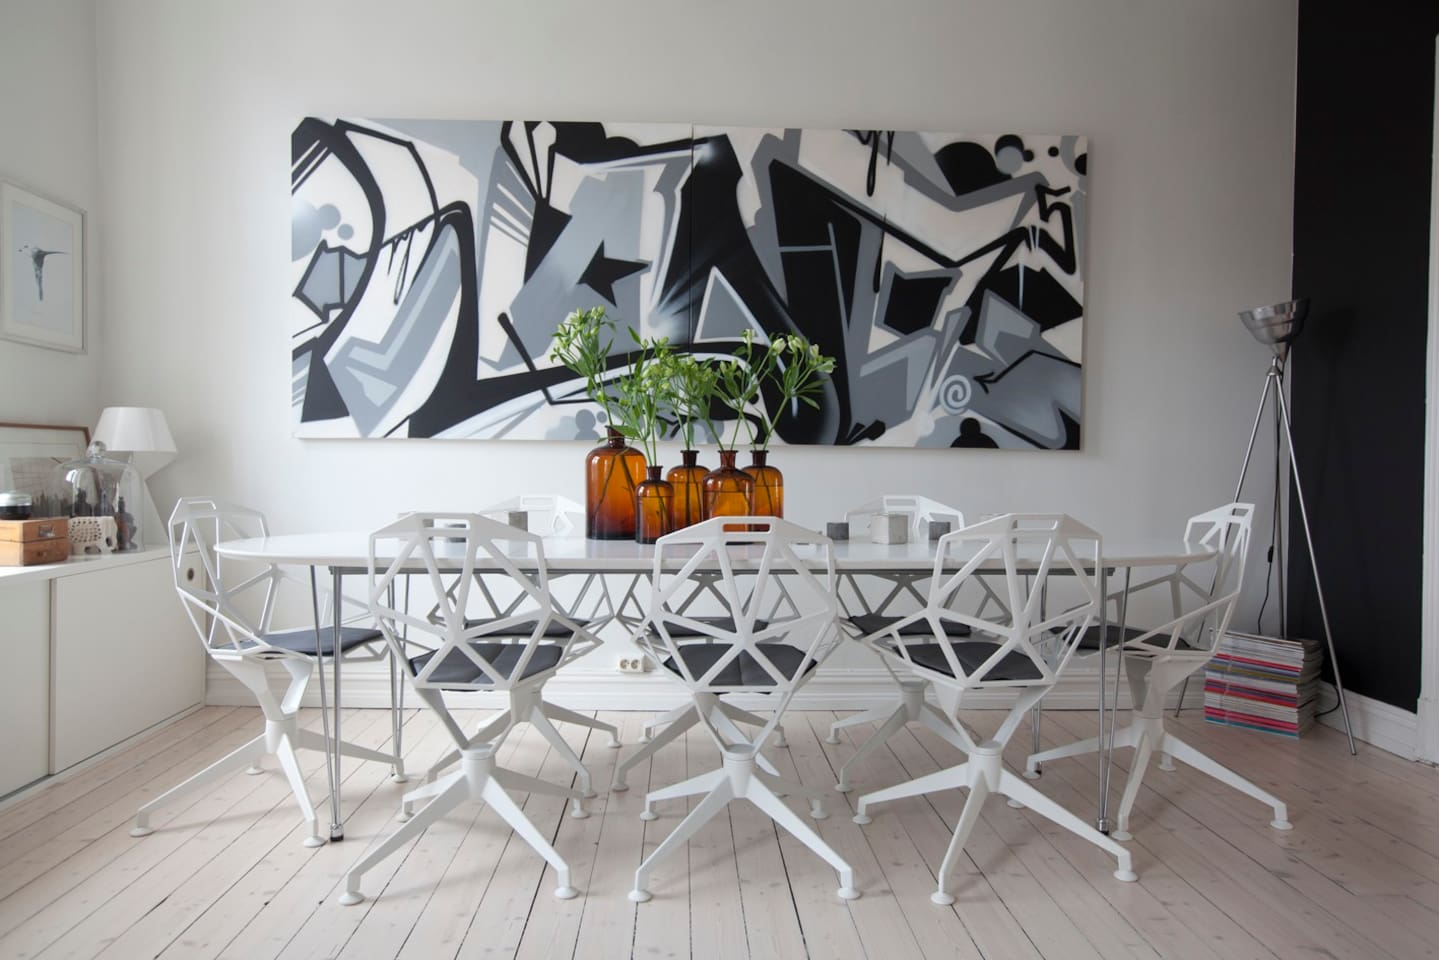 Dinning area with design chairs Chair one from Magis. Big graffiti picture in the back is from a NY artist called Wane COD